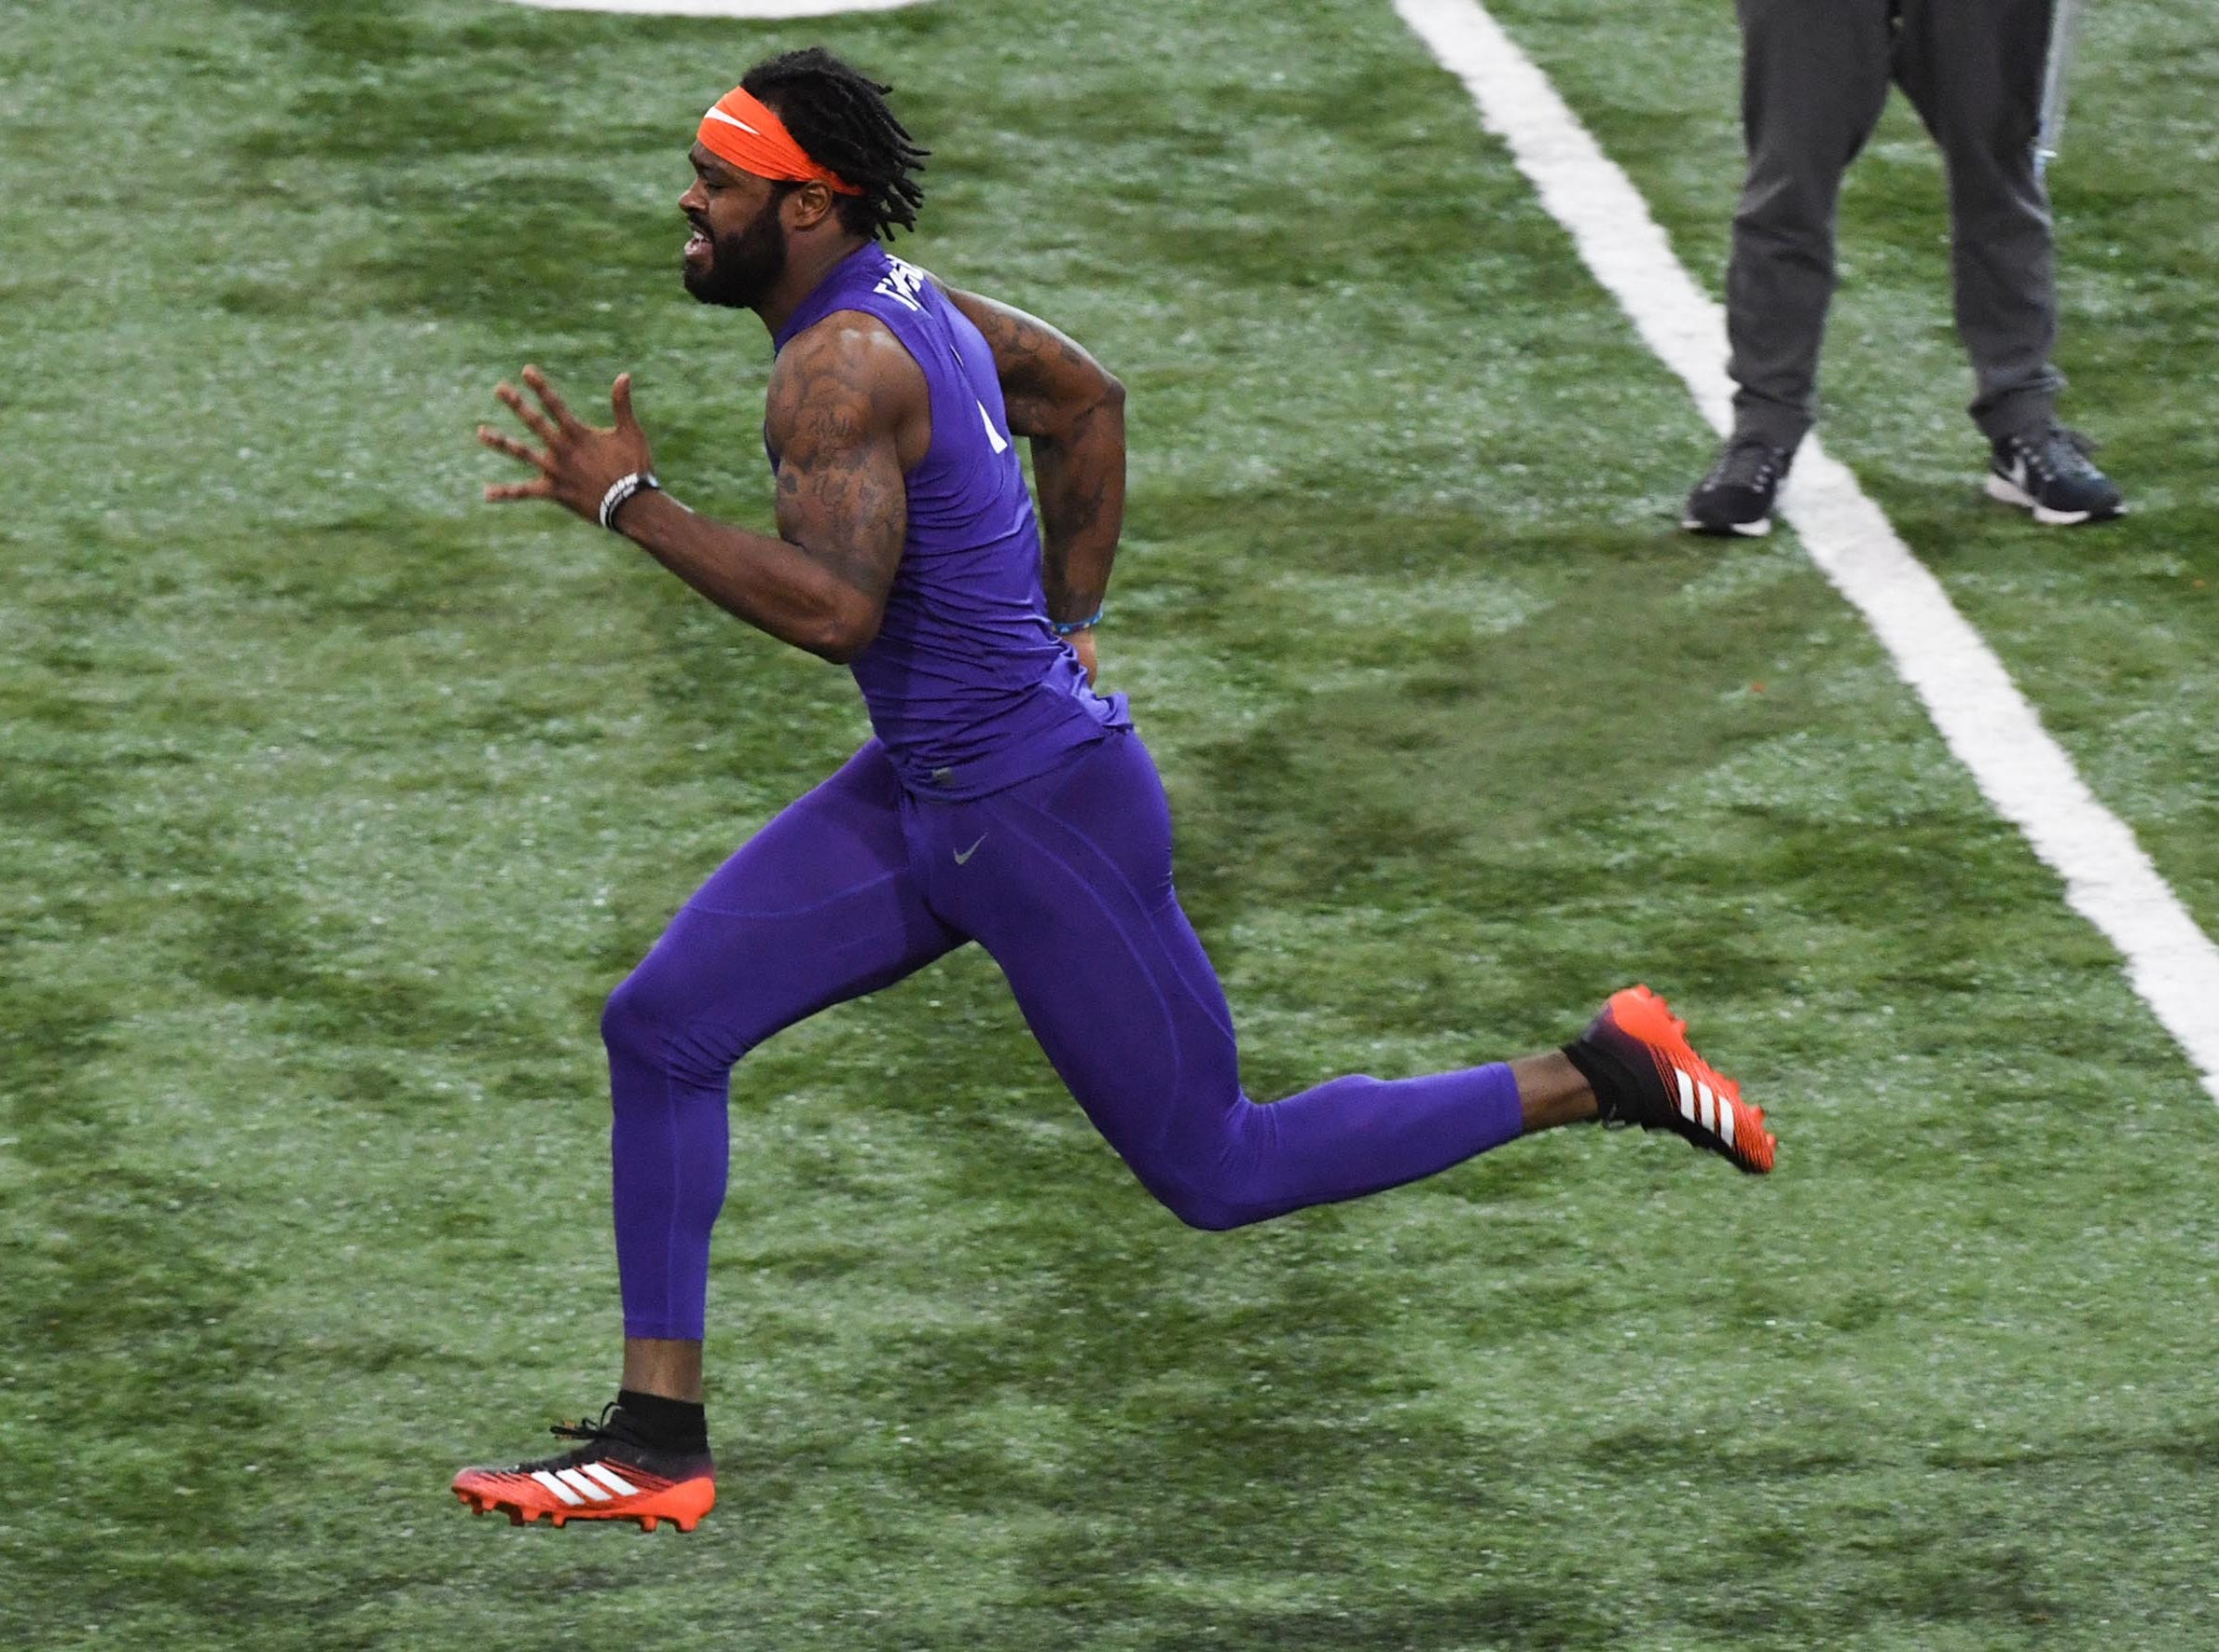 Wide receiver Trevion Thompson is timed by scouts during Clemson pro day at the Poe Indoor Facility in Clemson Thursday, March 14, 2019.